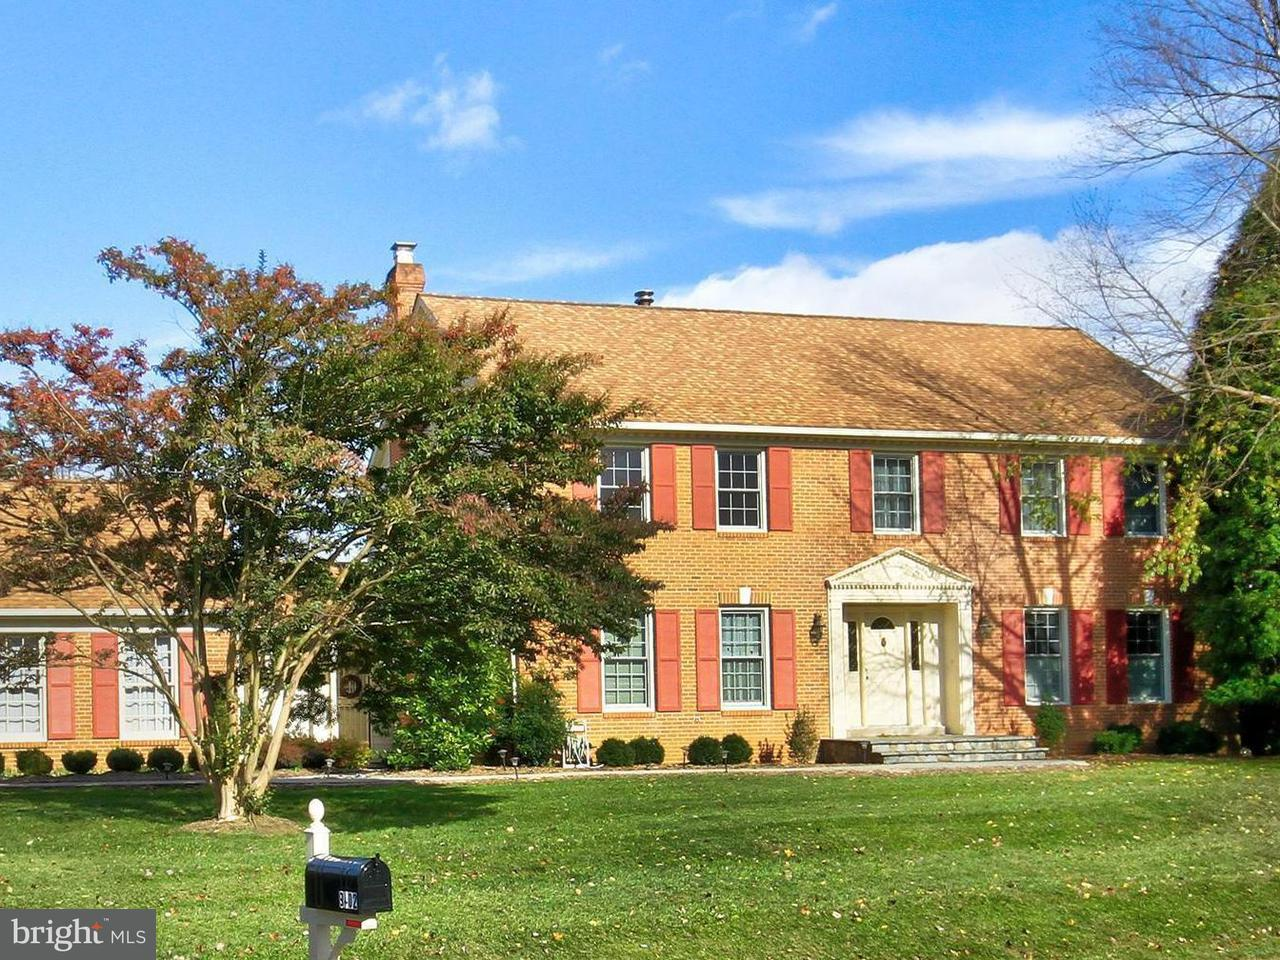 Single Family Home for Sale at 9402 Brian Jac Lane 9402 Brian Jac Lane Great Falls, Virginia 22066 United States